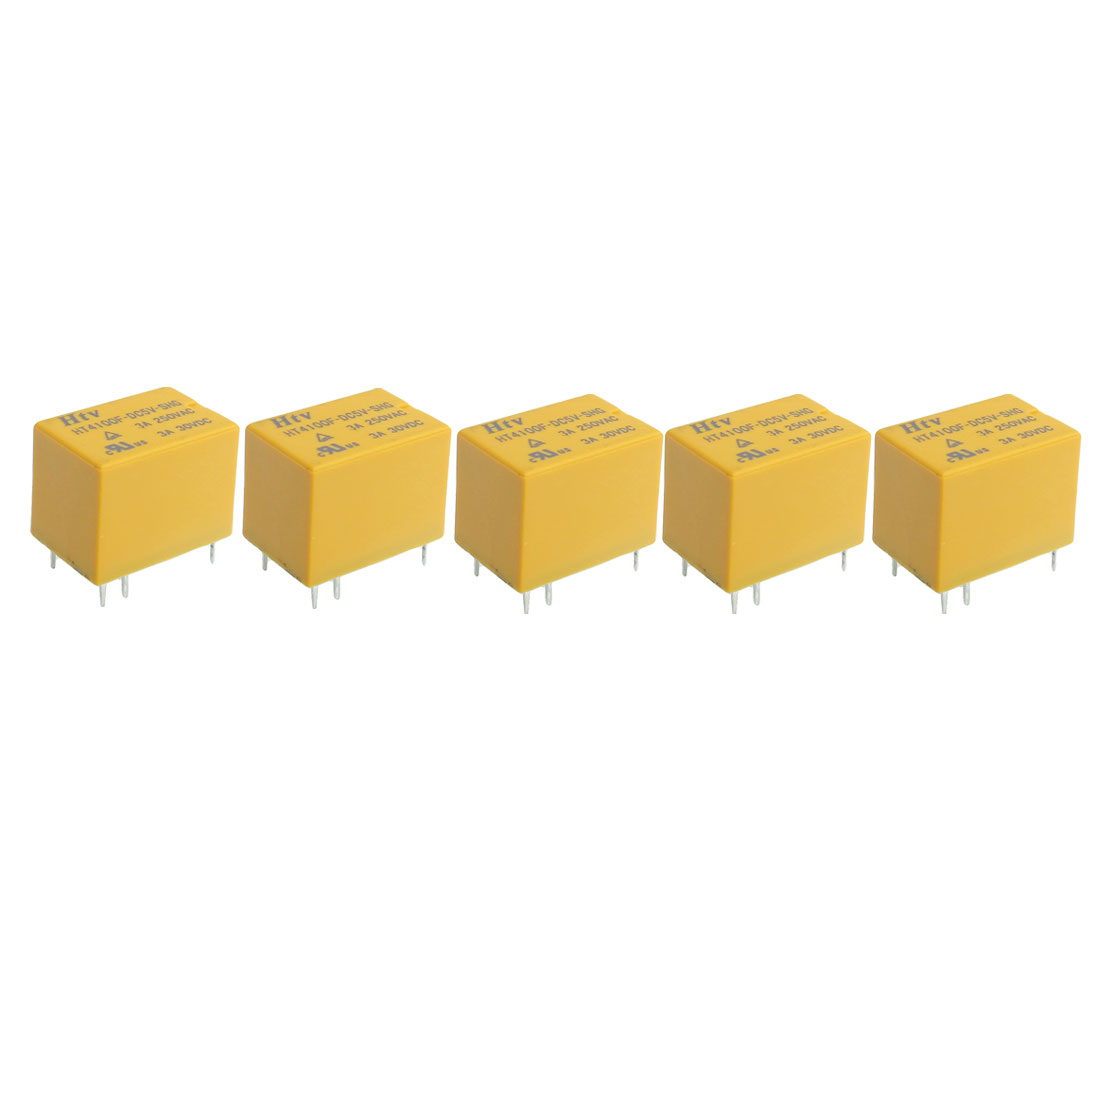 HT4100F DC 5V Coil 6 Pin General Power Relay SPDT 5 Pcs